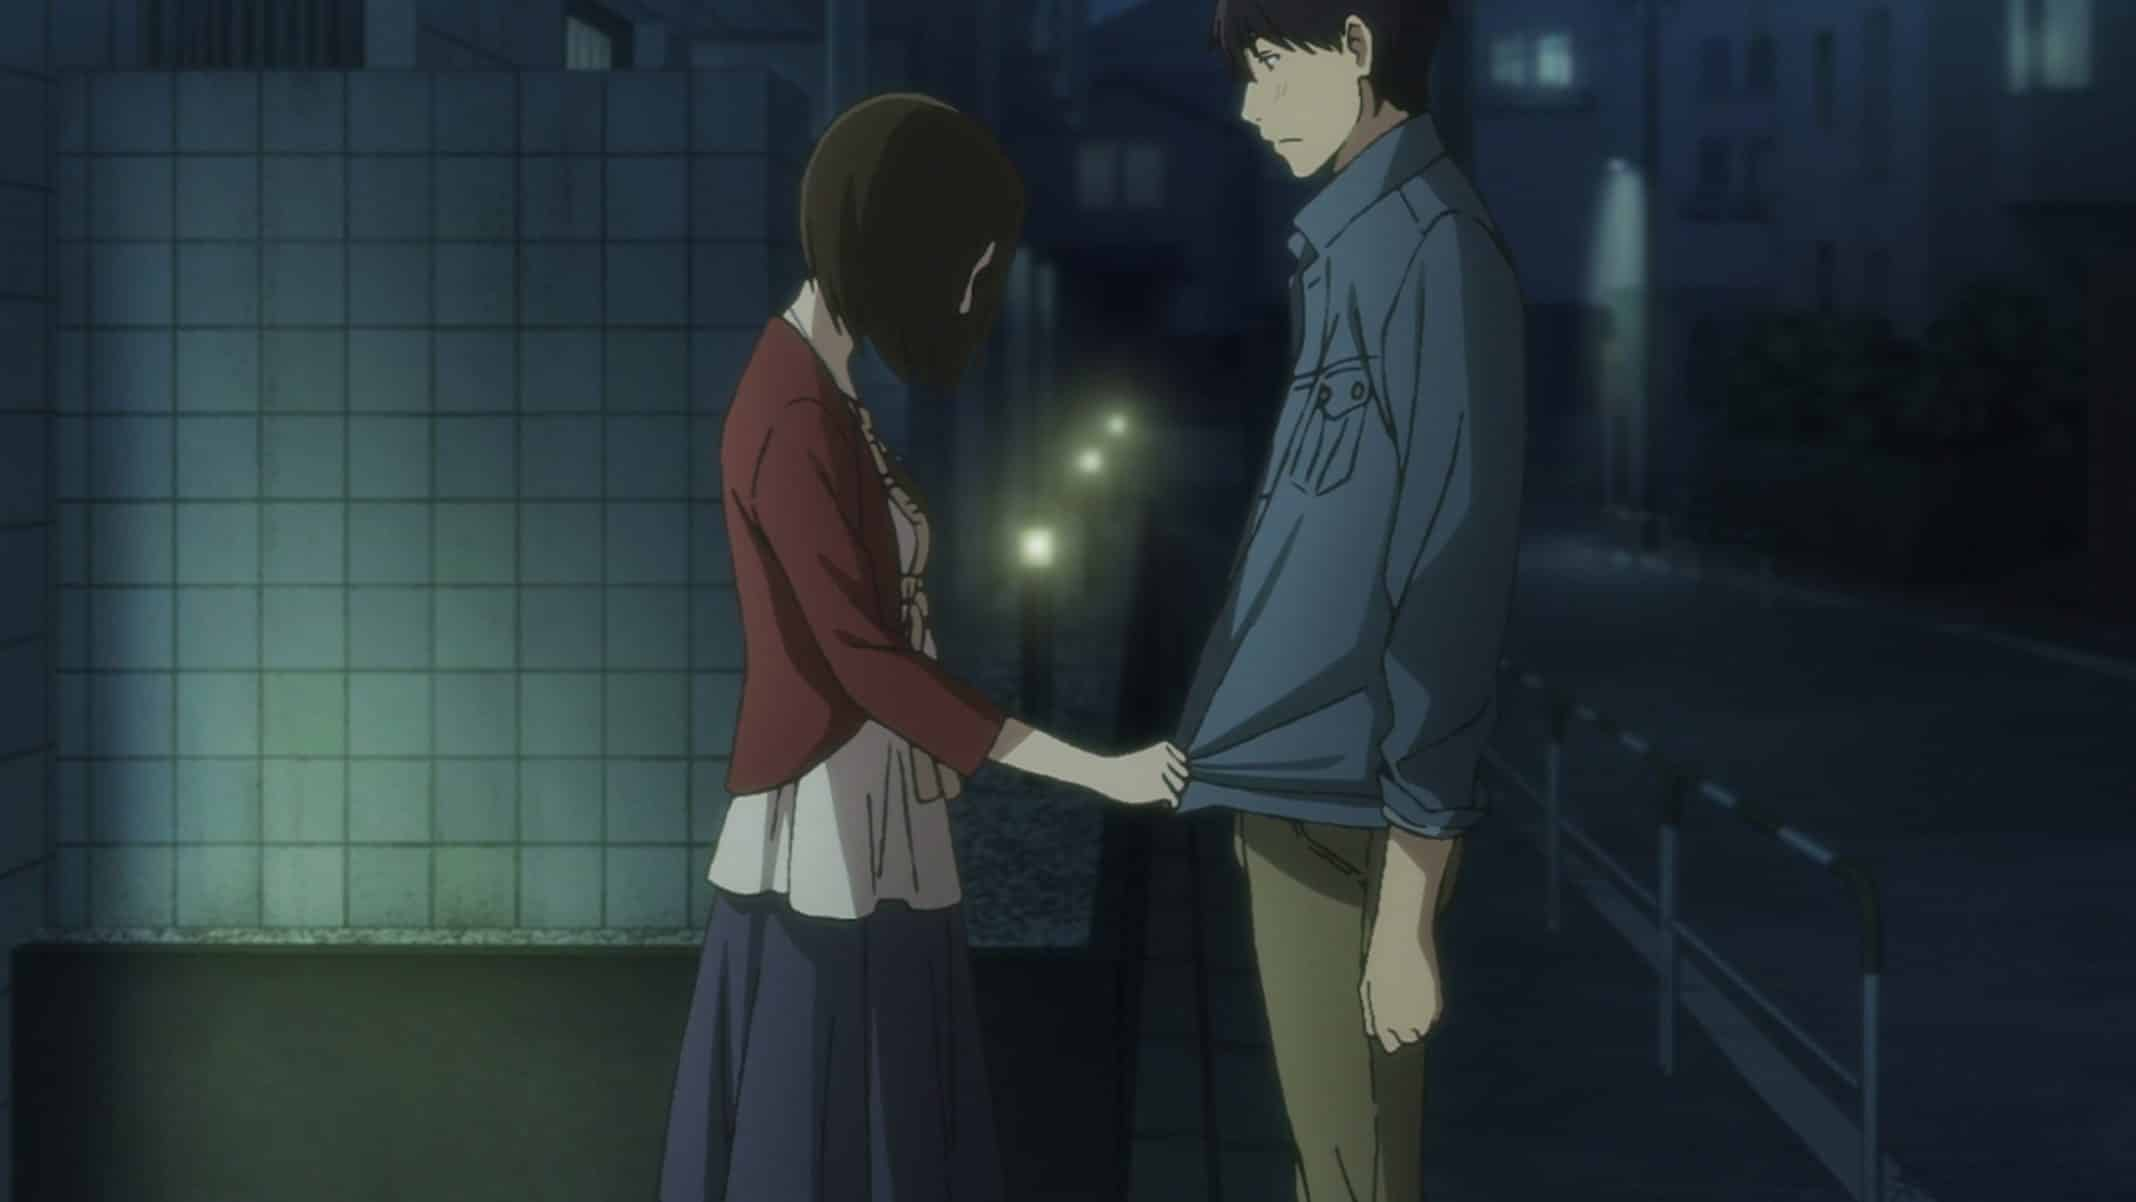 Shinako and Rikuo having a moment on the street.